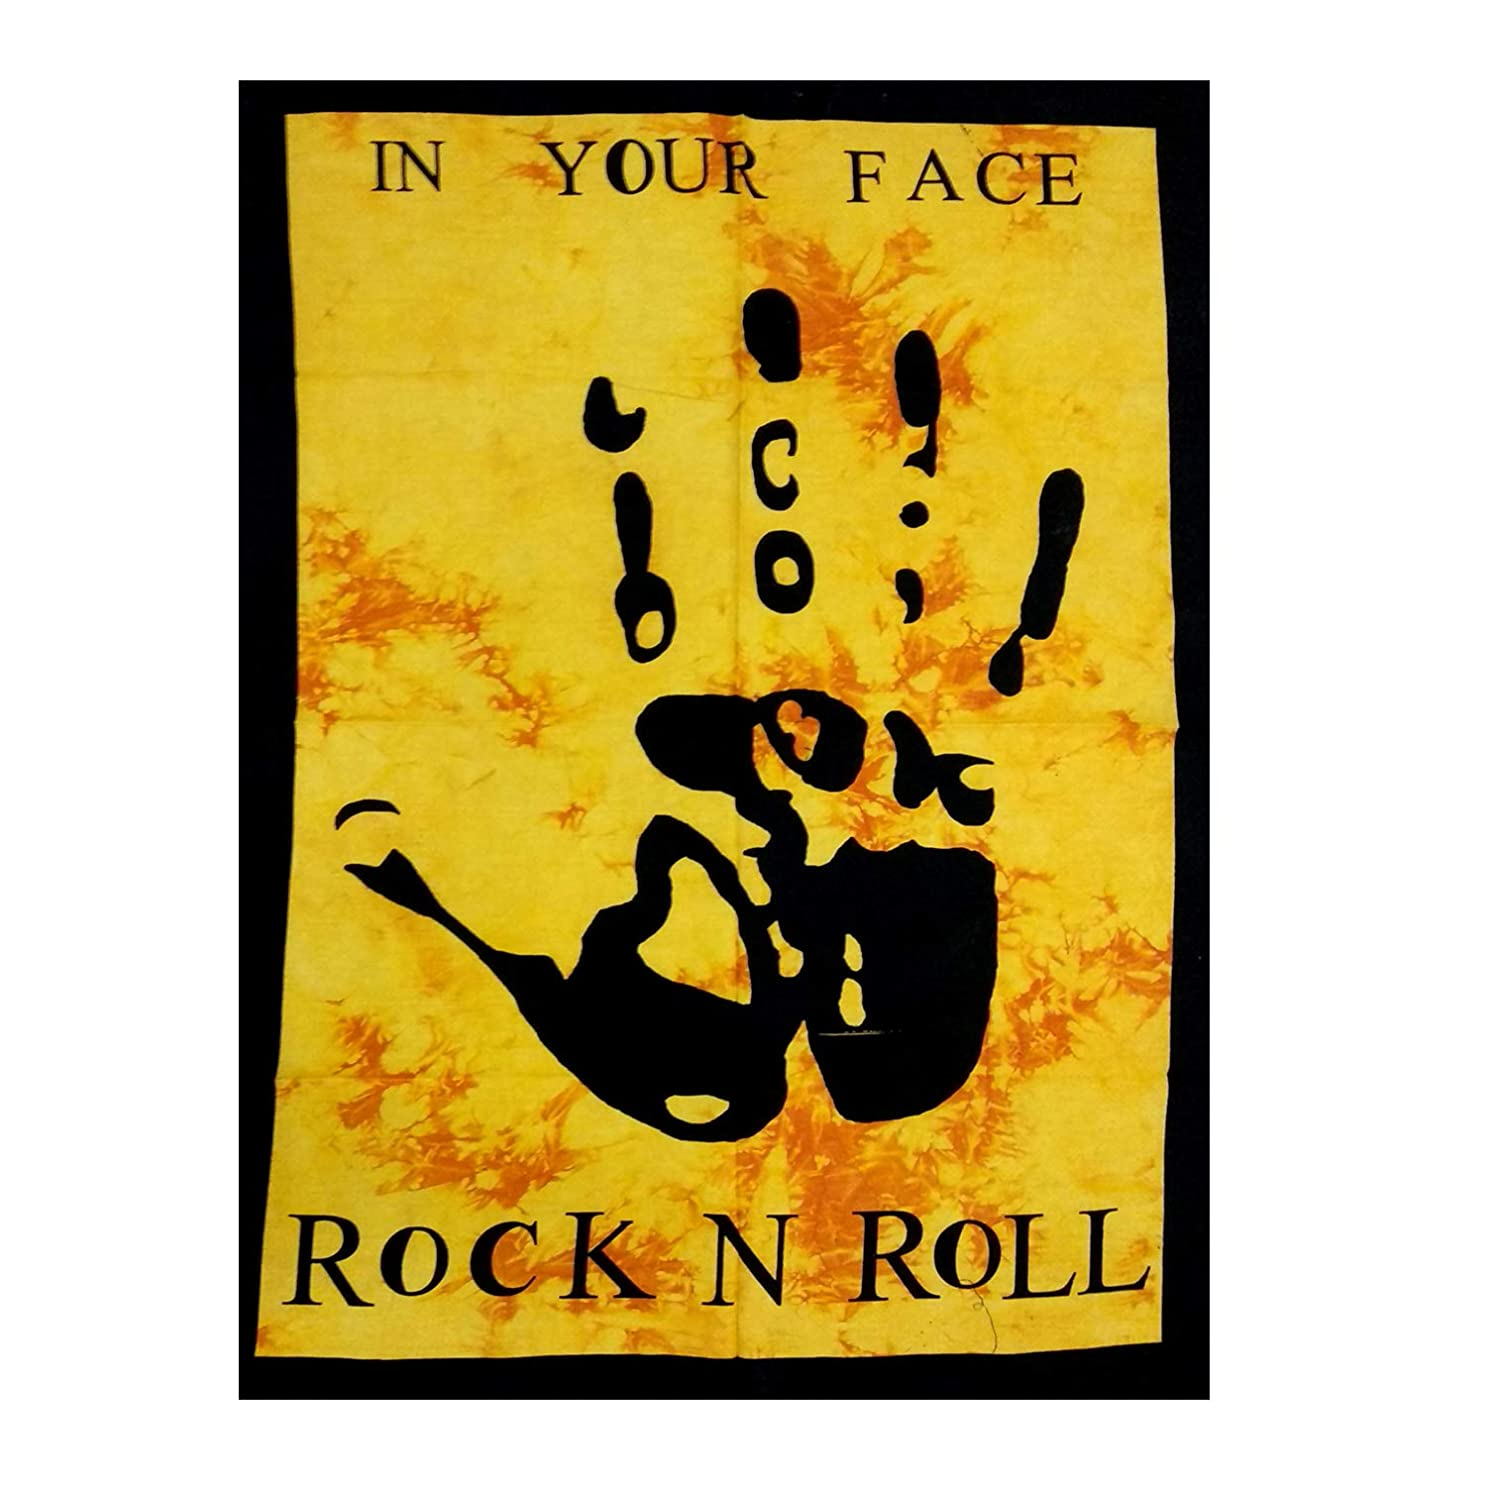 Amazon.com: ICC Rock N Roll Posters Concert Music Quote Rock Decor ...